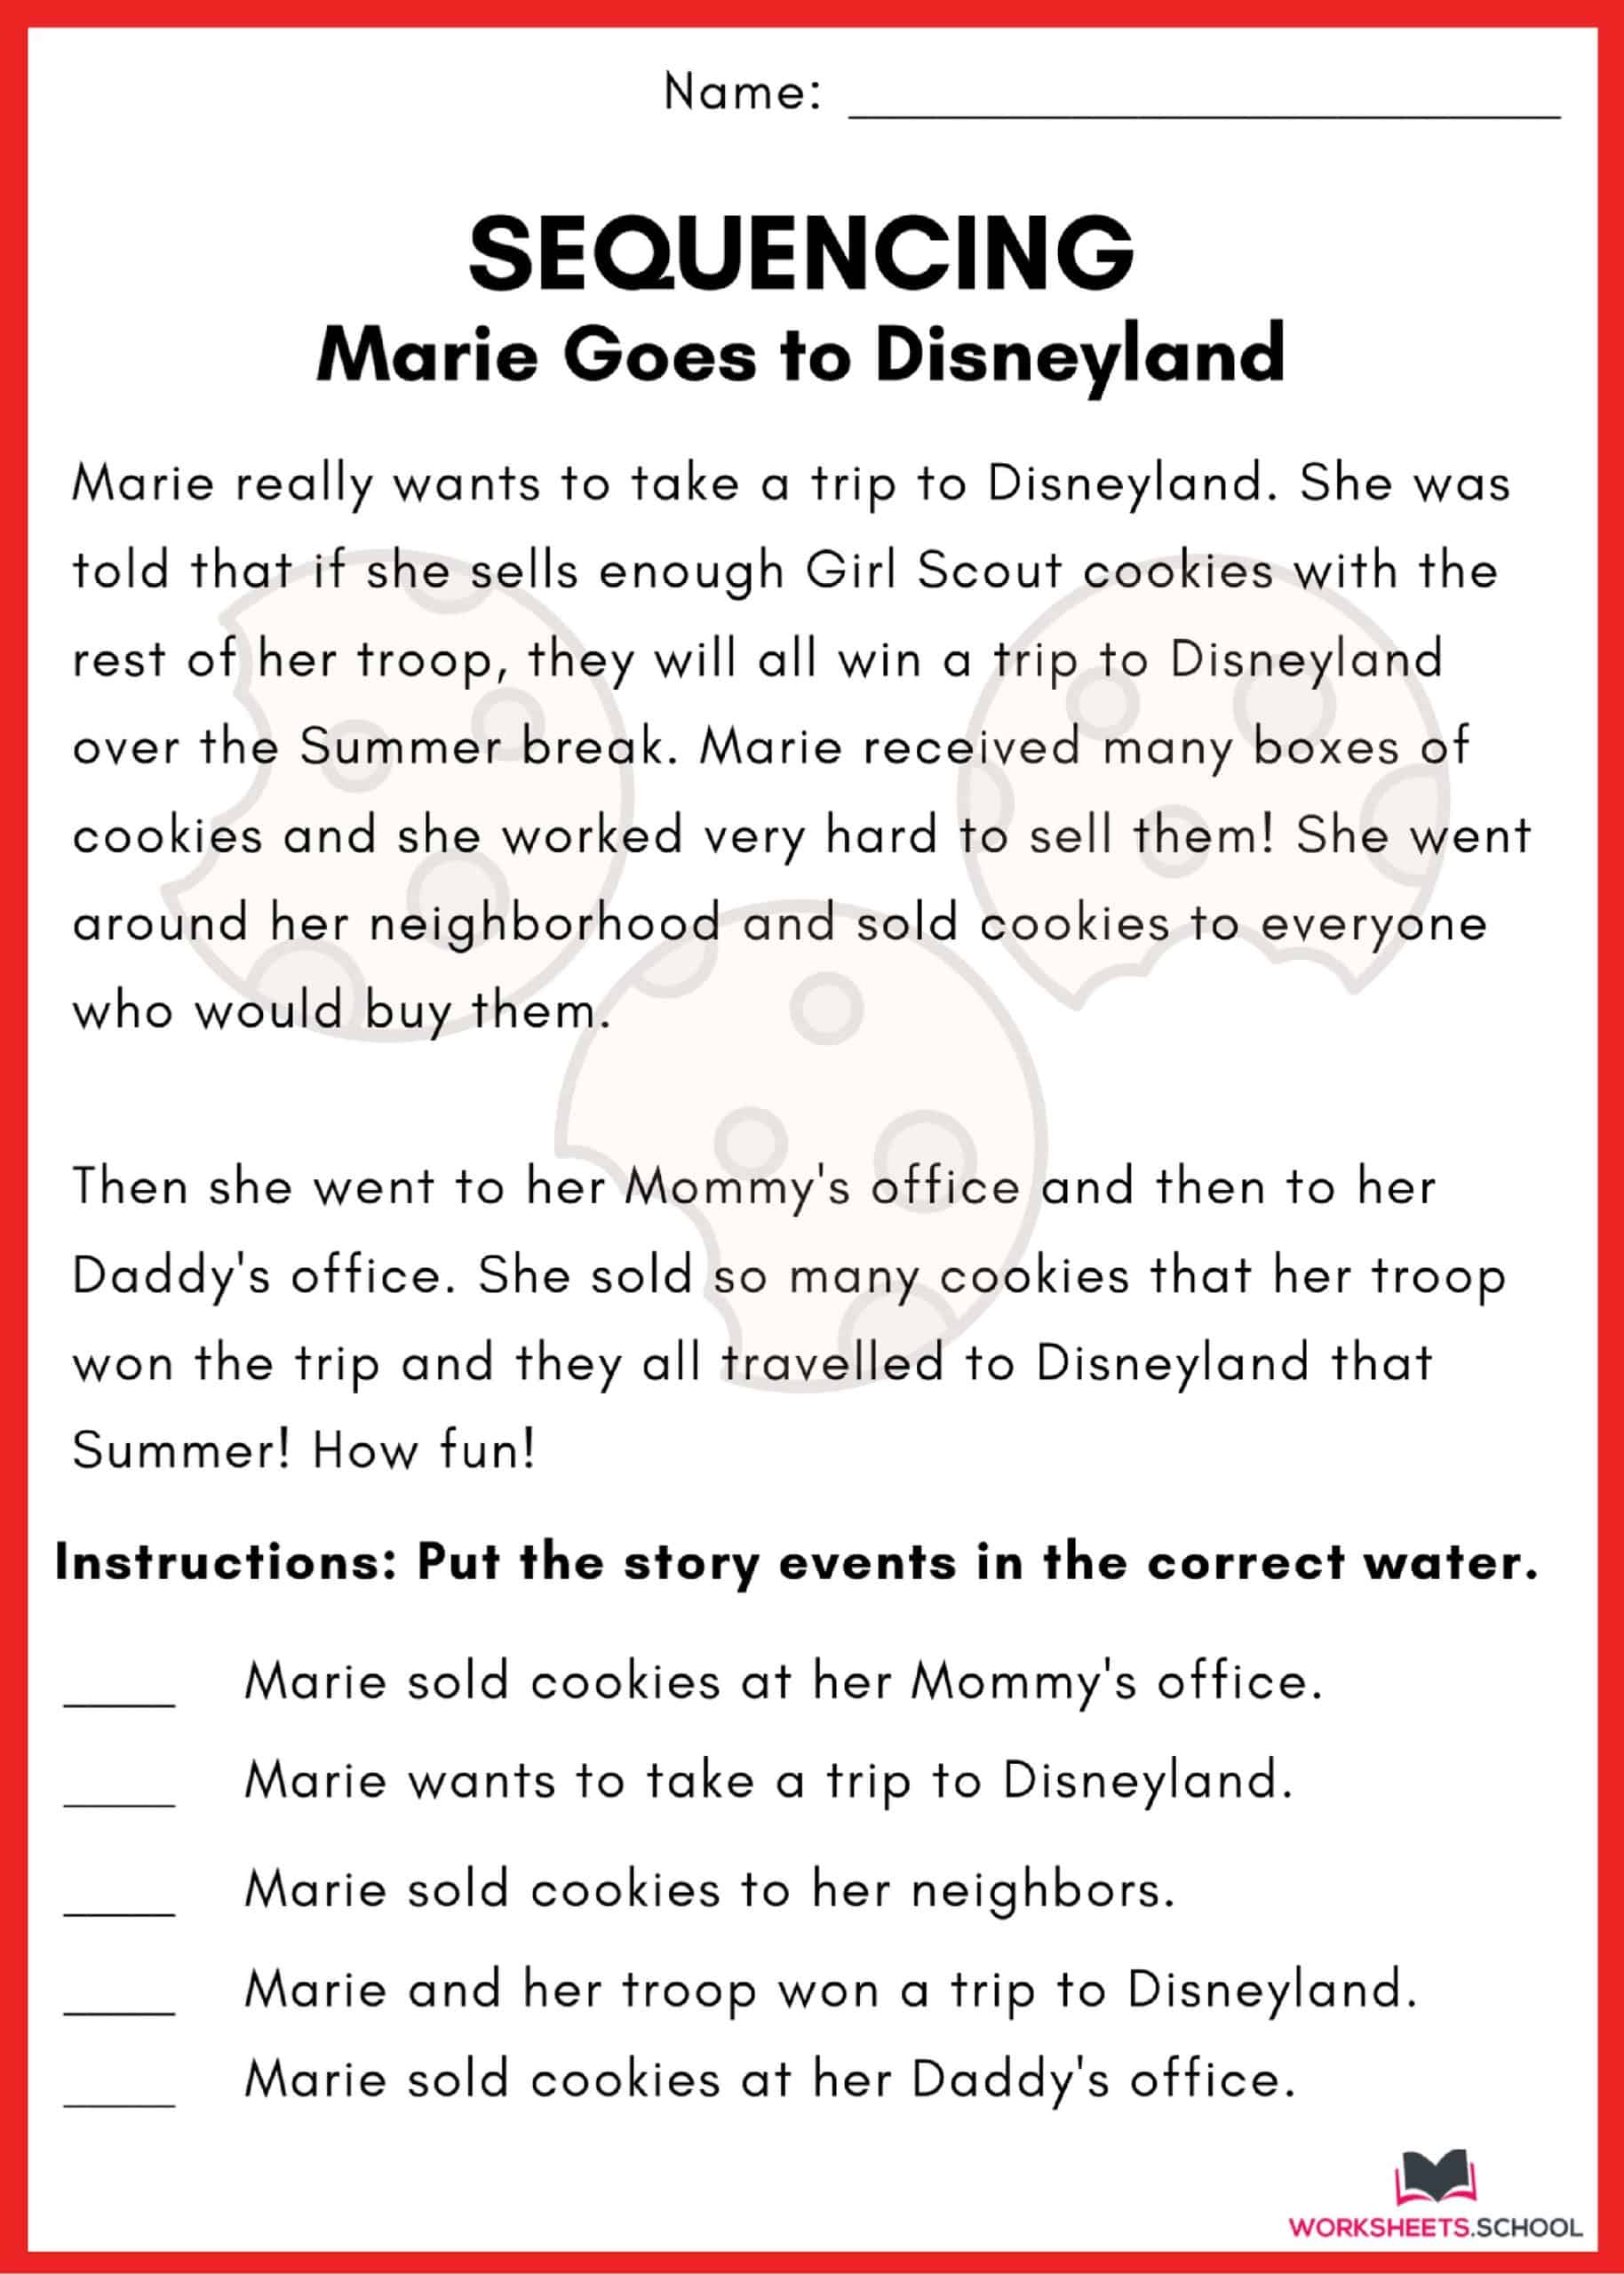 Sequencing Worksheet - Disneyland